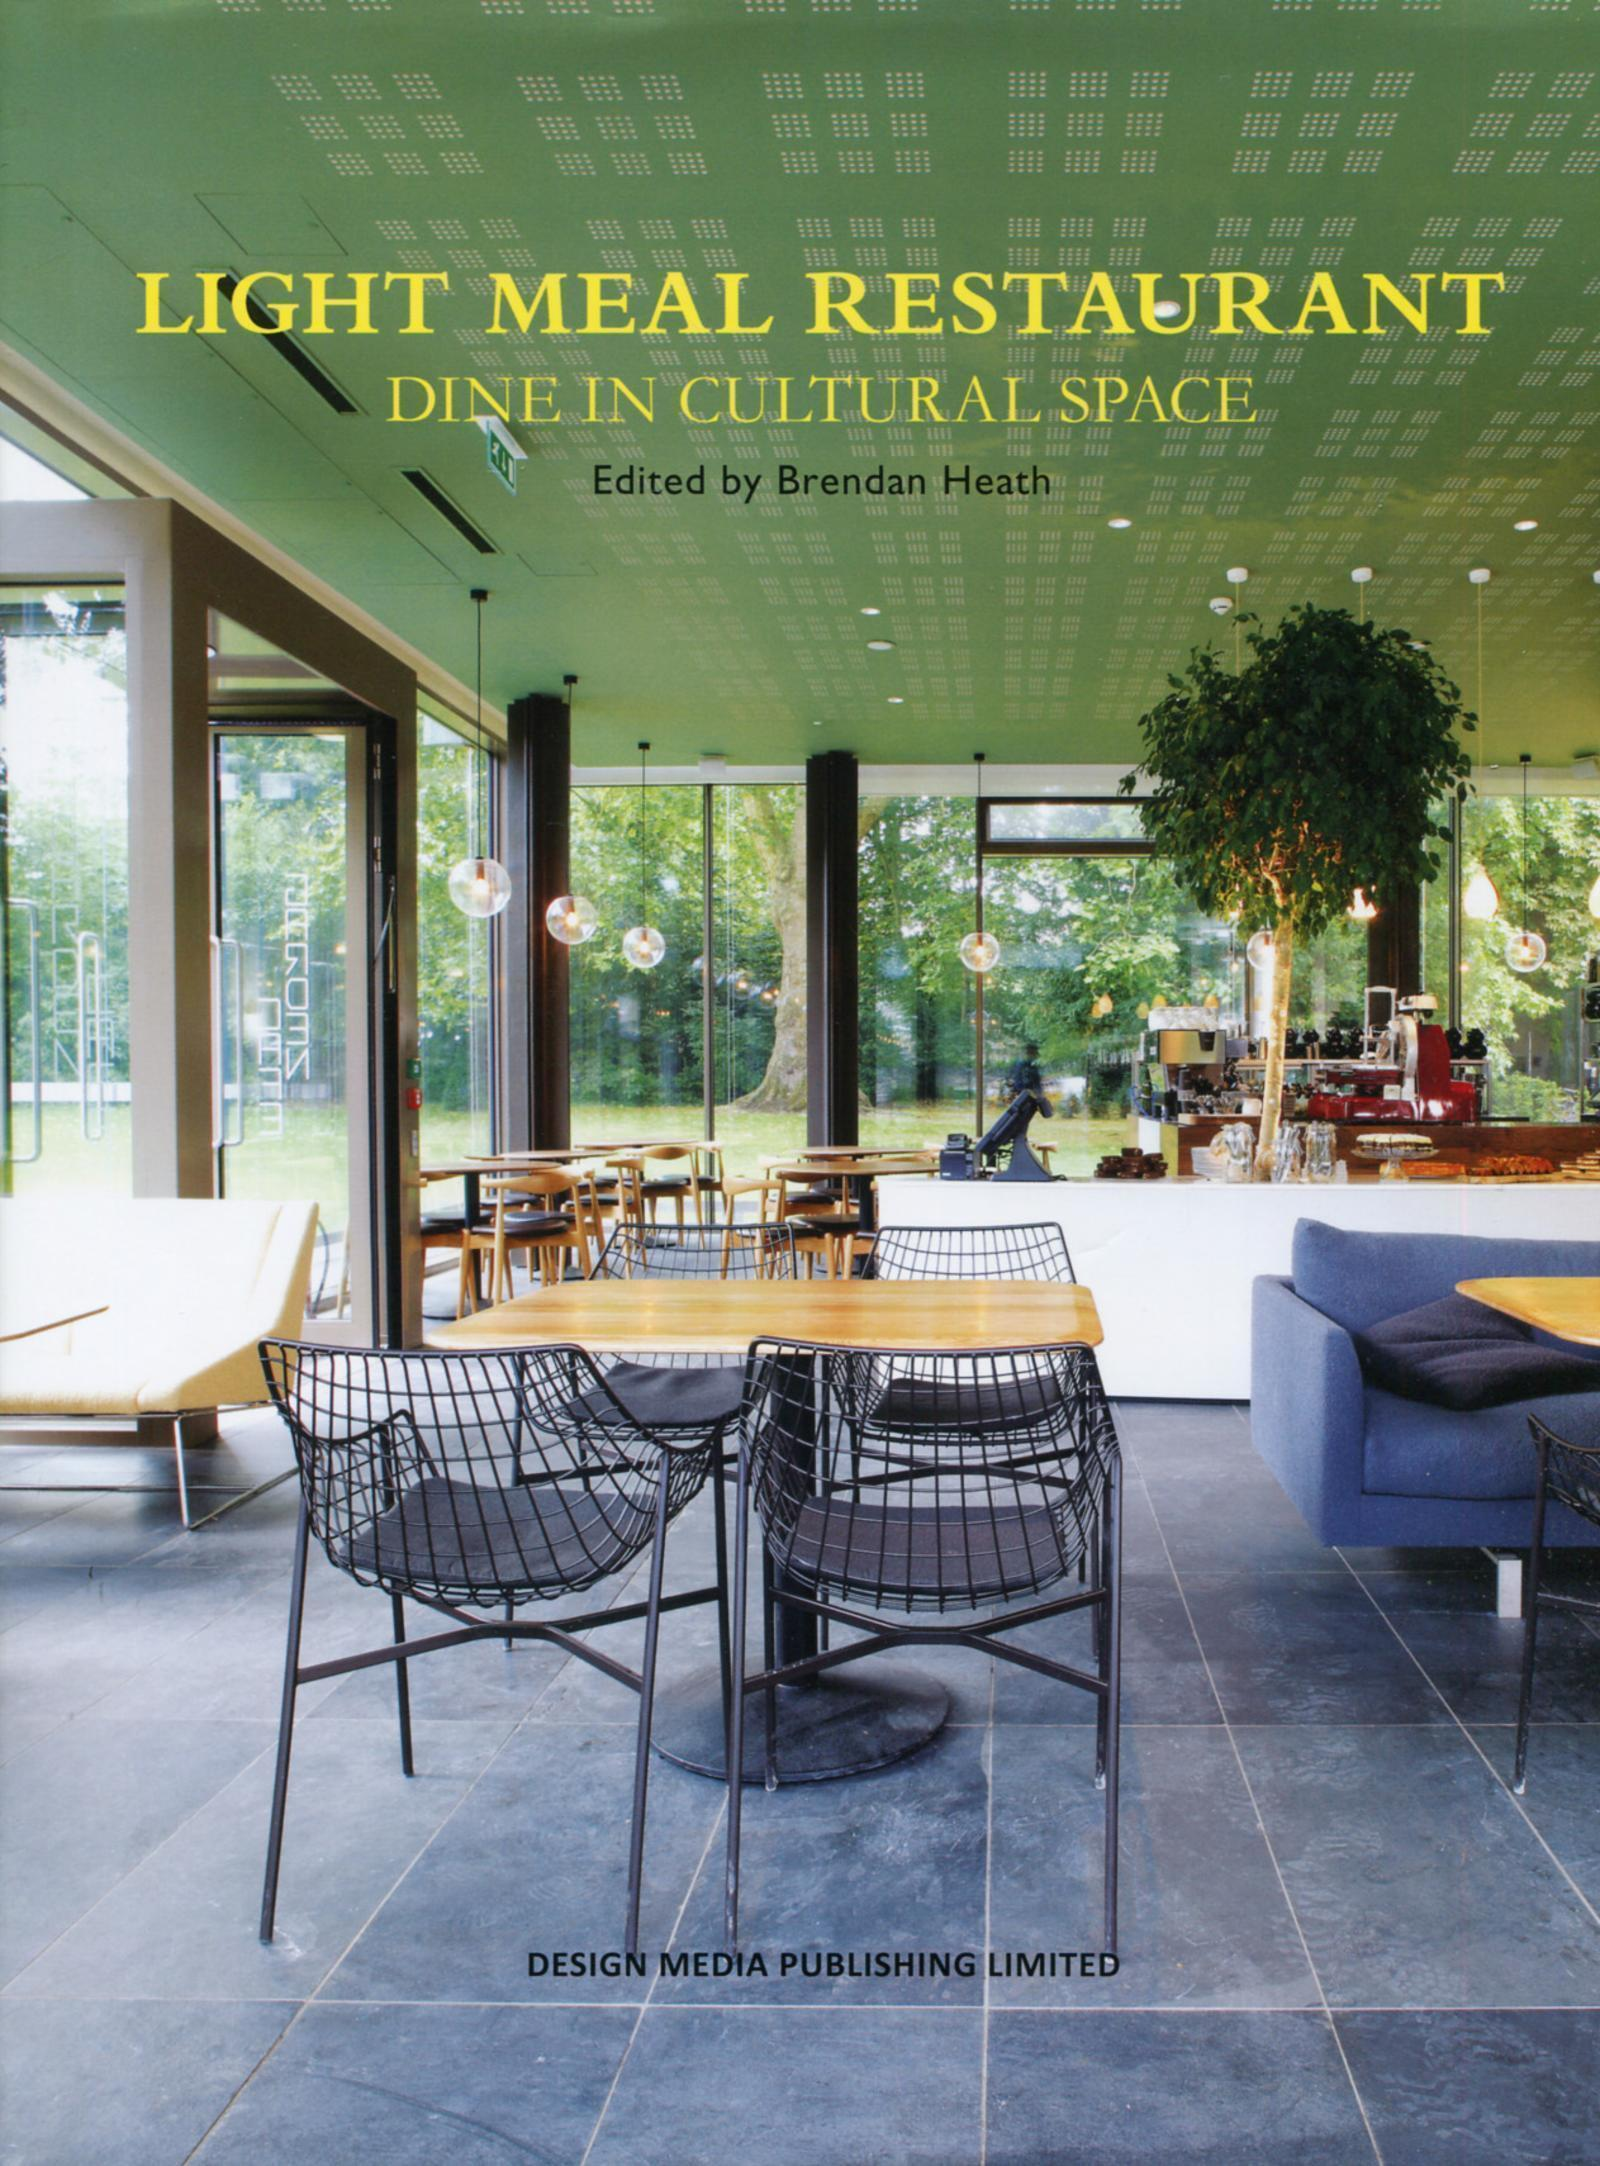 LIGHT MEAL RESTAURANT - DINE IN CULTURAL SPACE.